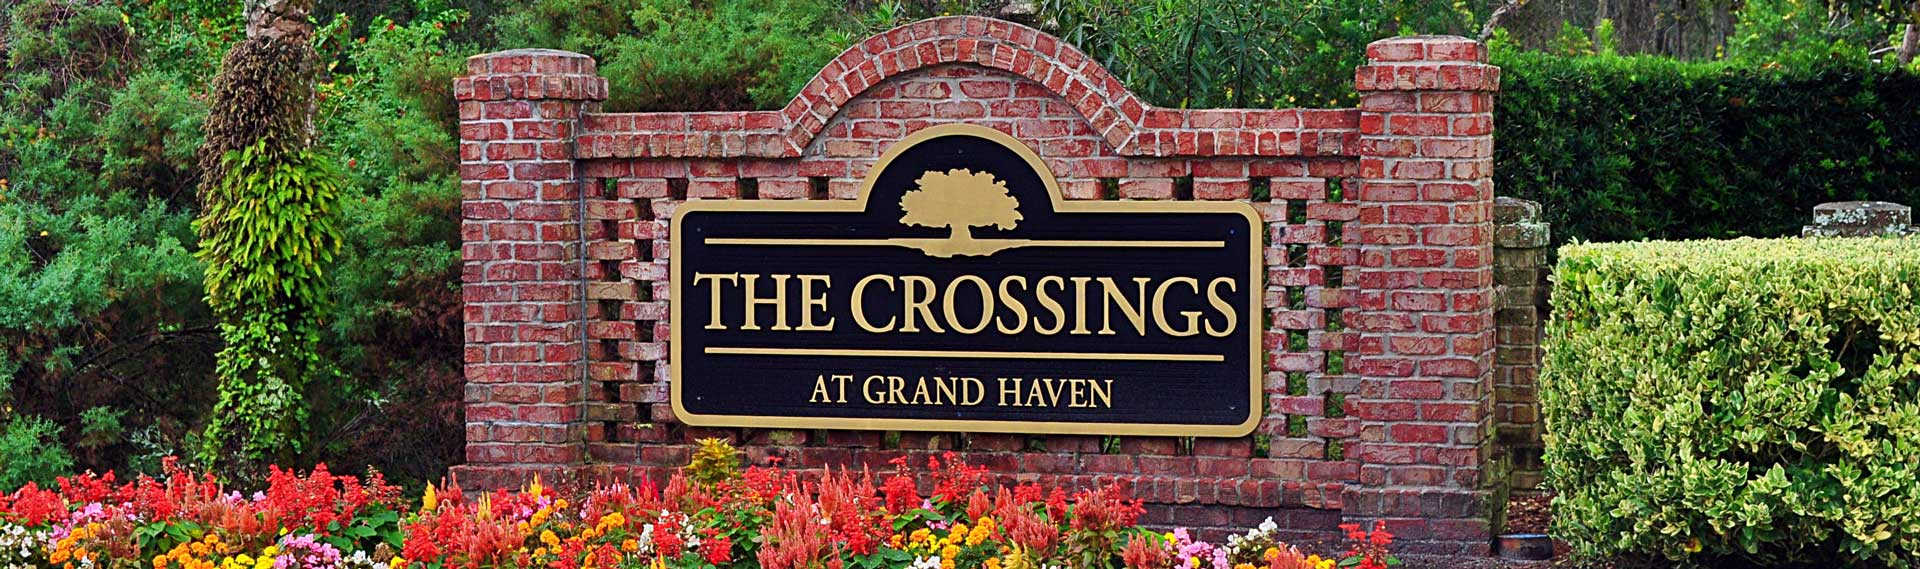 The Crossings at Grand Haven Monument Sign